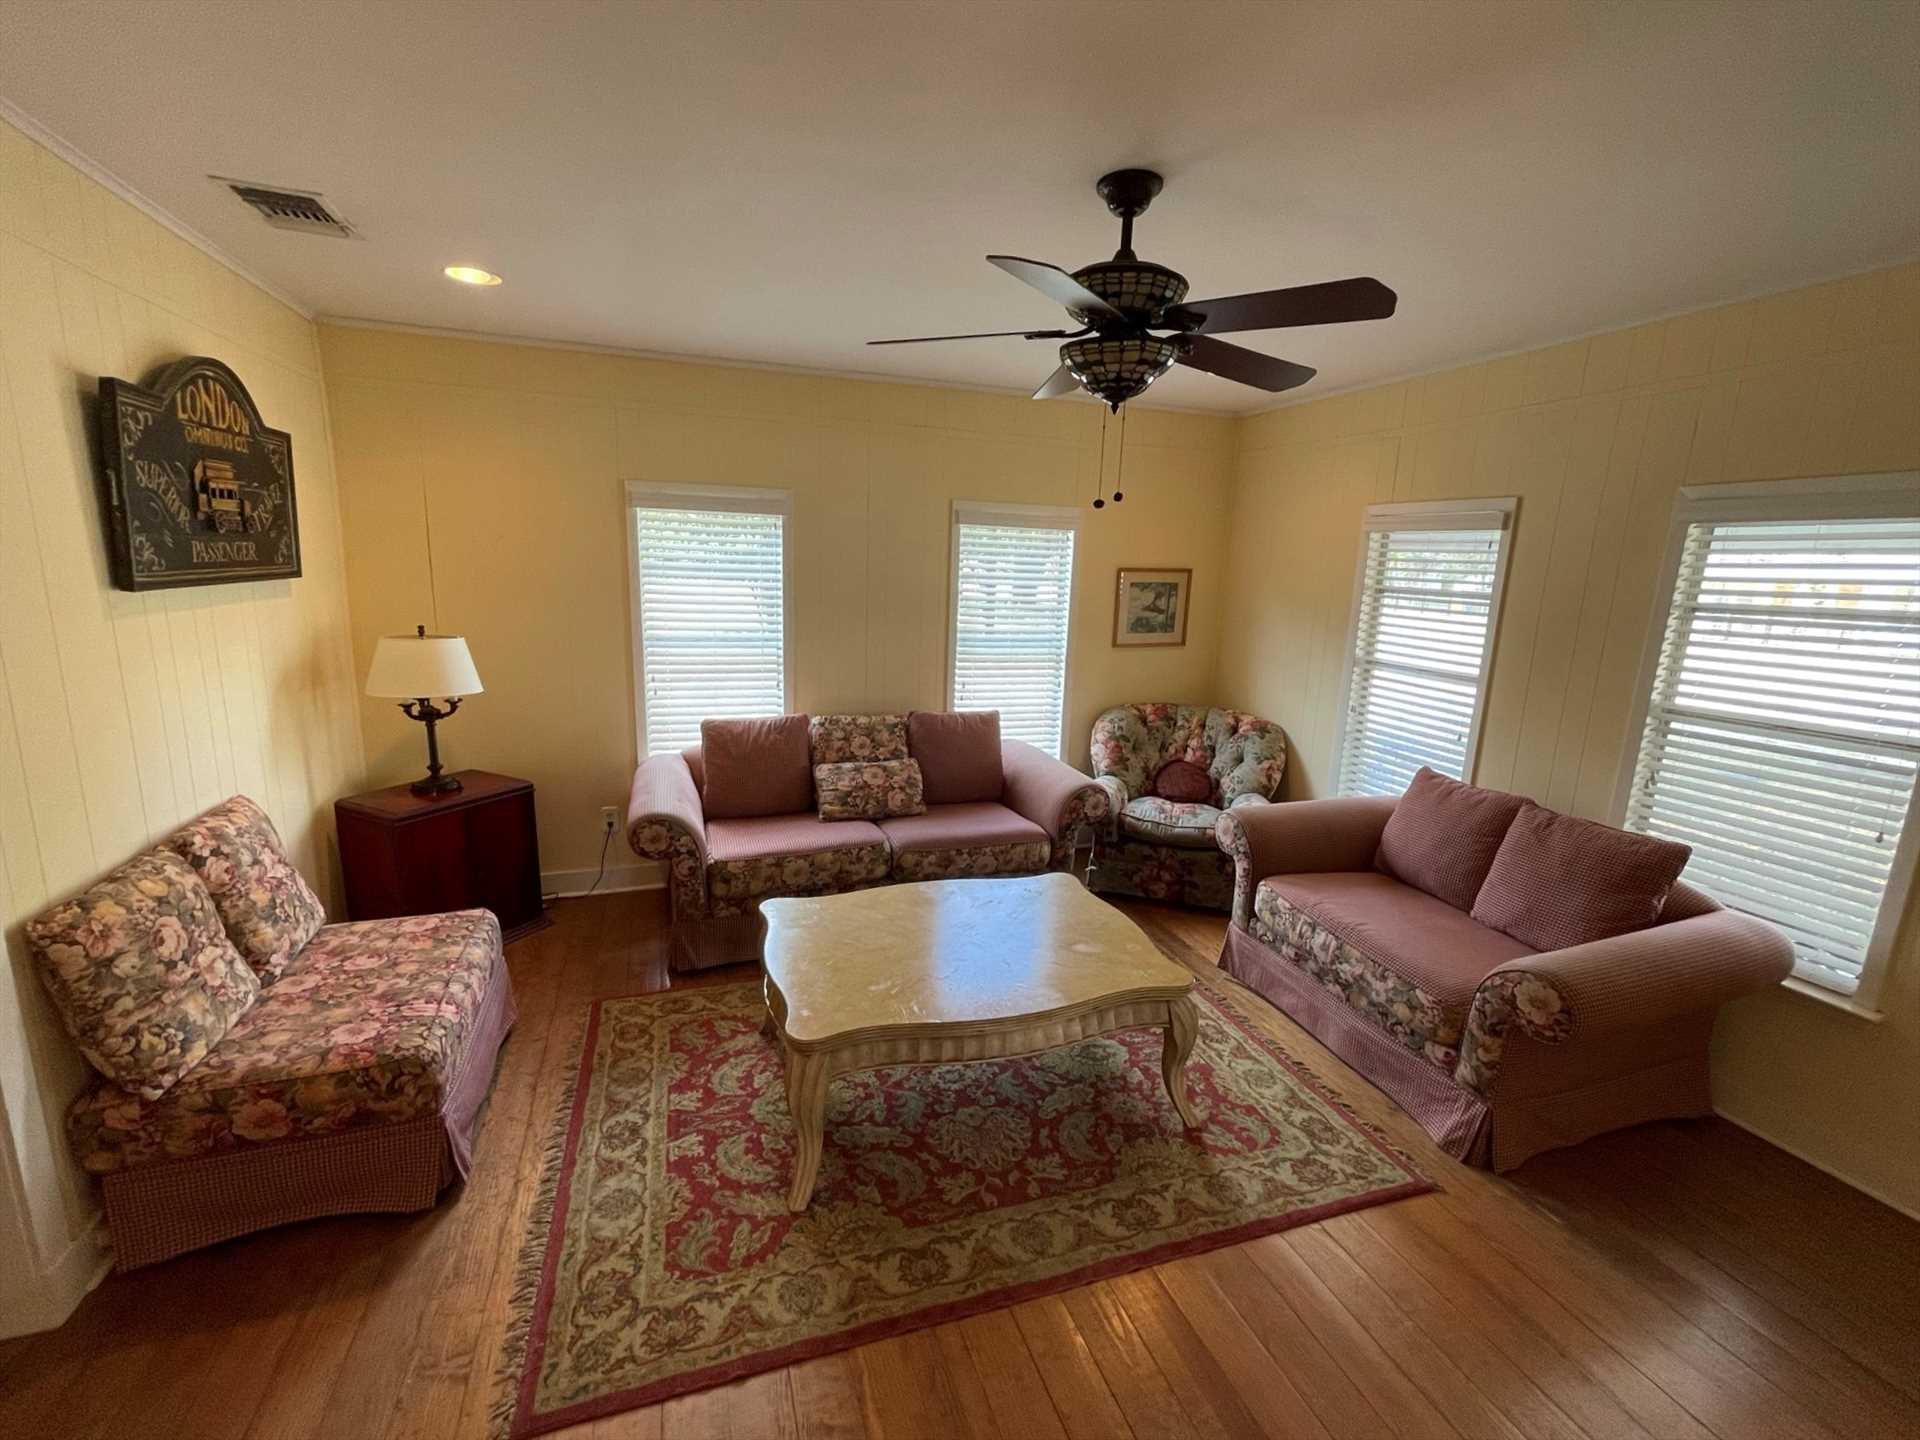 Granny keeps her house neat as a pin, and the living area provides a warm and welcoming family space.